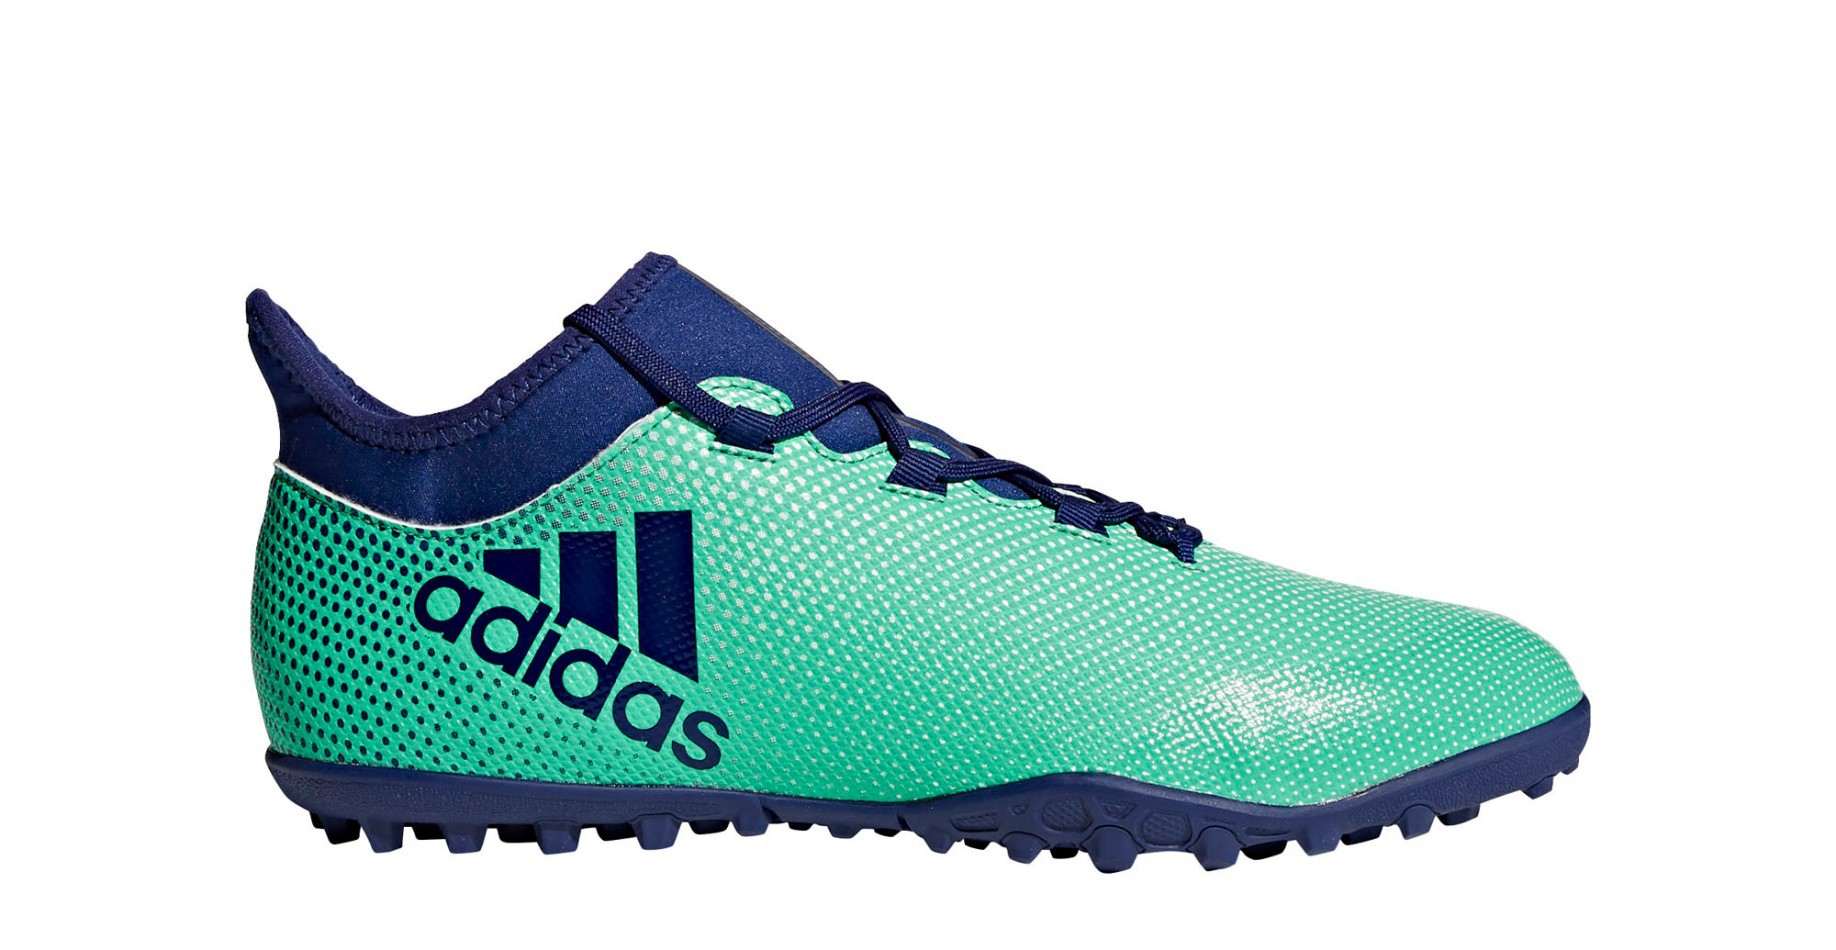 quality design 31bbf df6db Shoes Soccer Adidas X 17.3 Tango TF Deadly Strike Pack